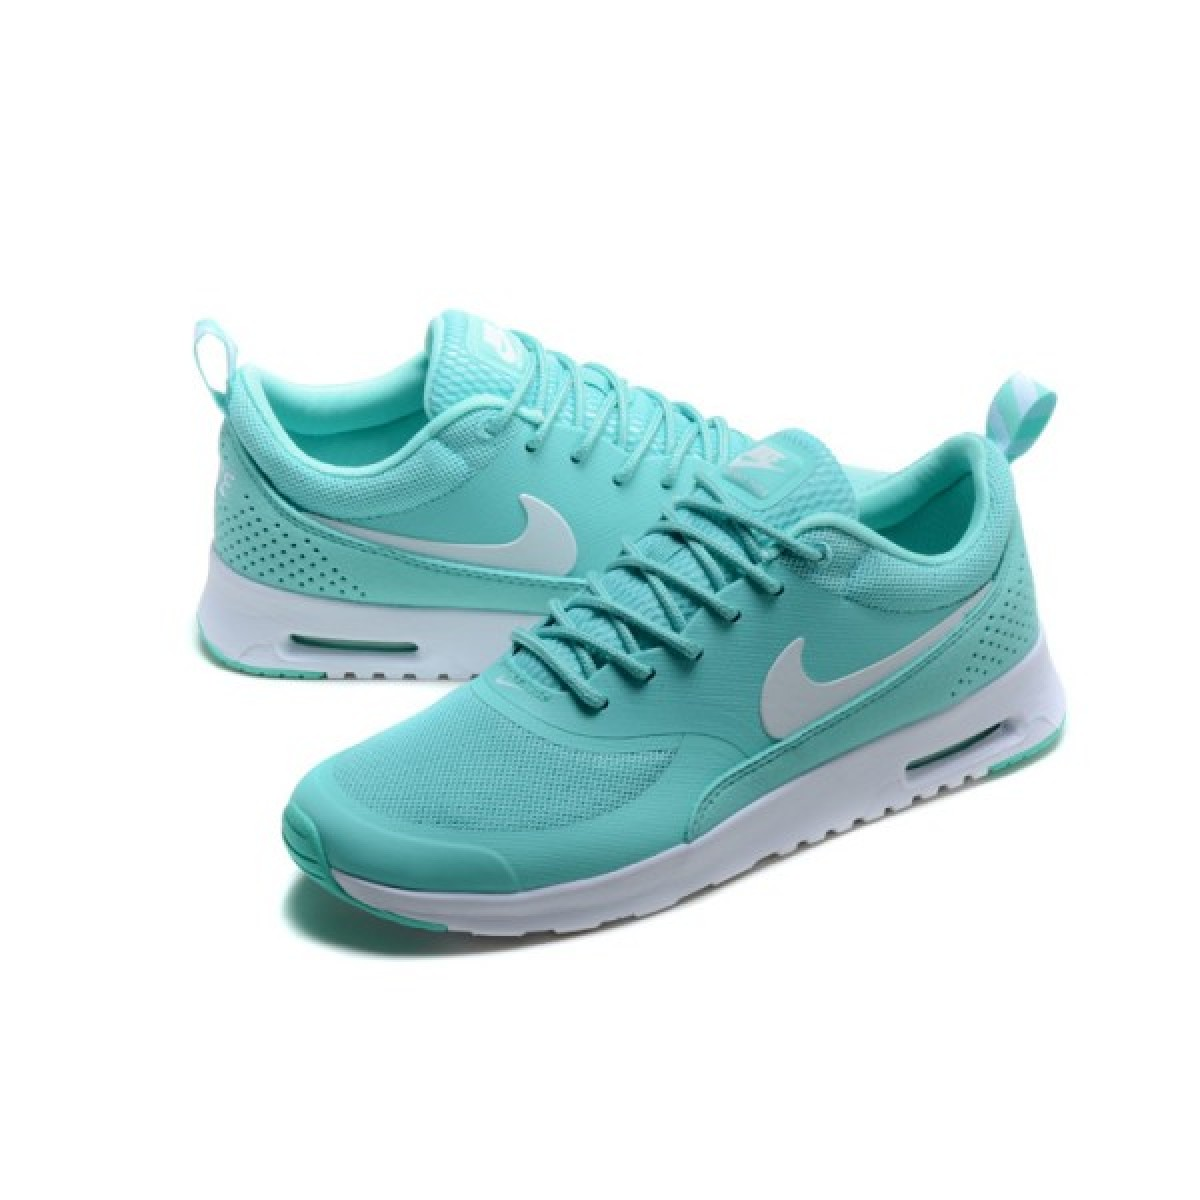 nike air max thea femme turquoise